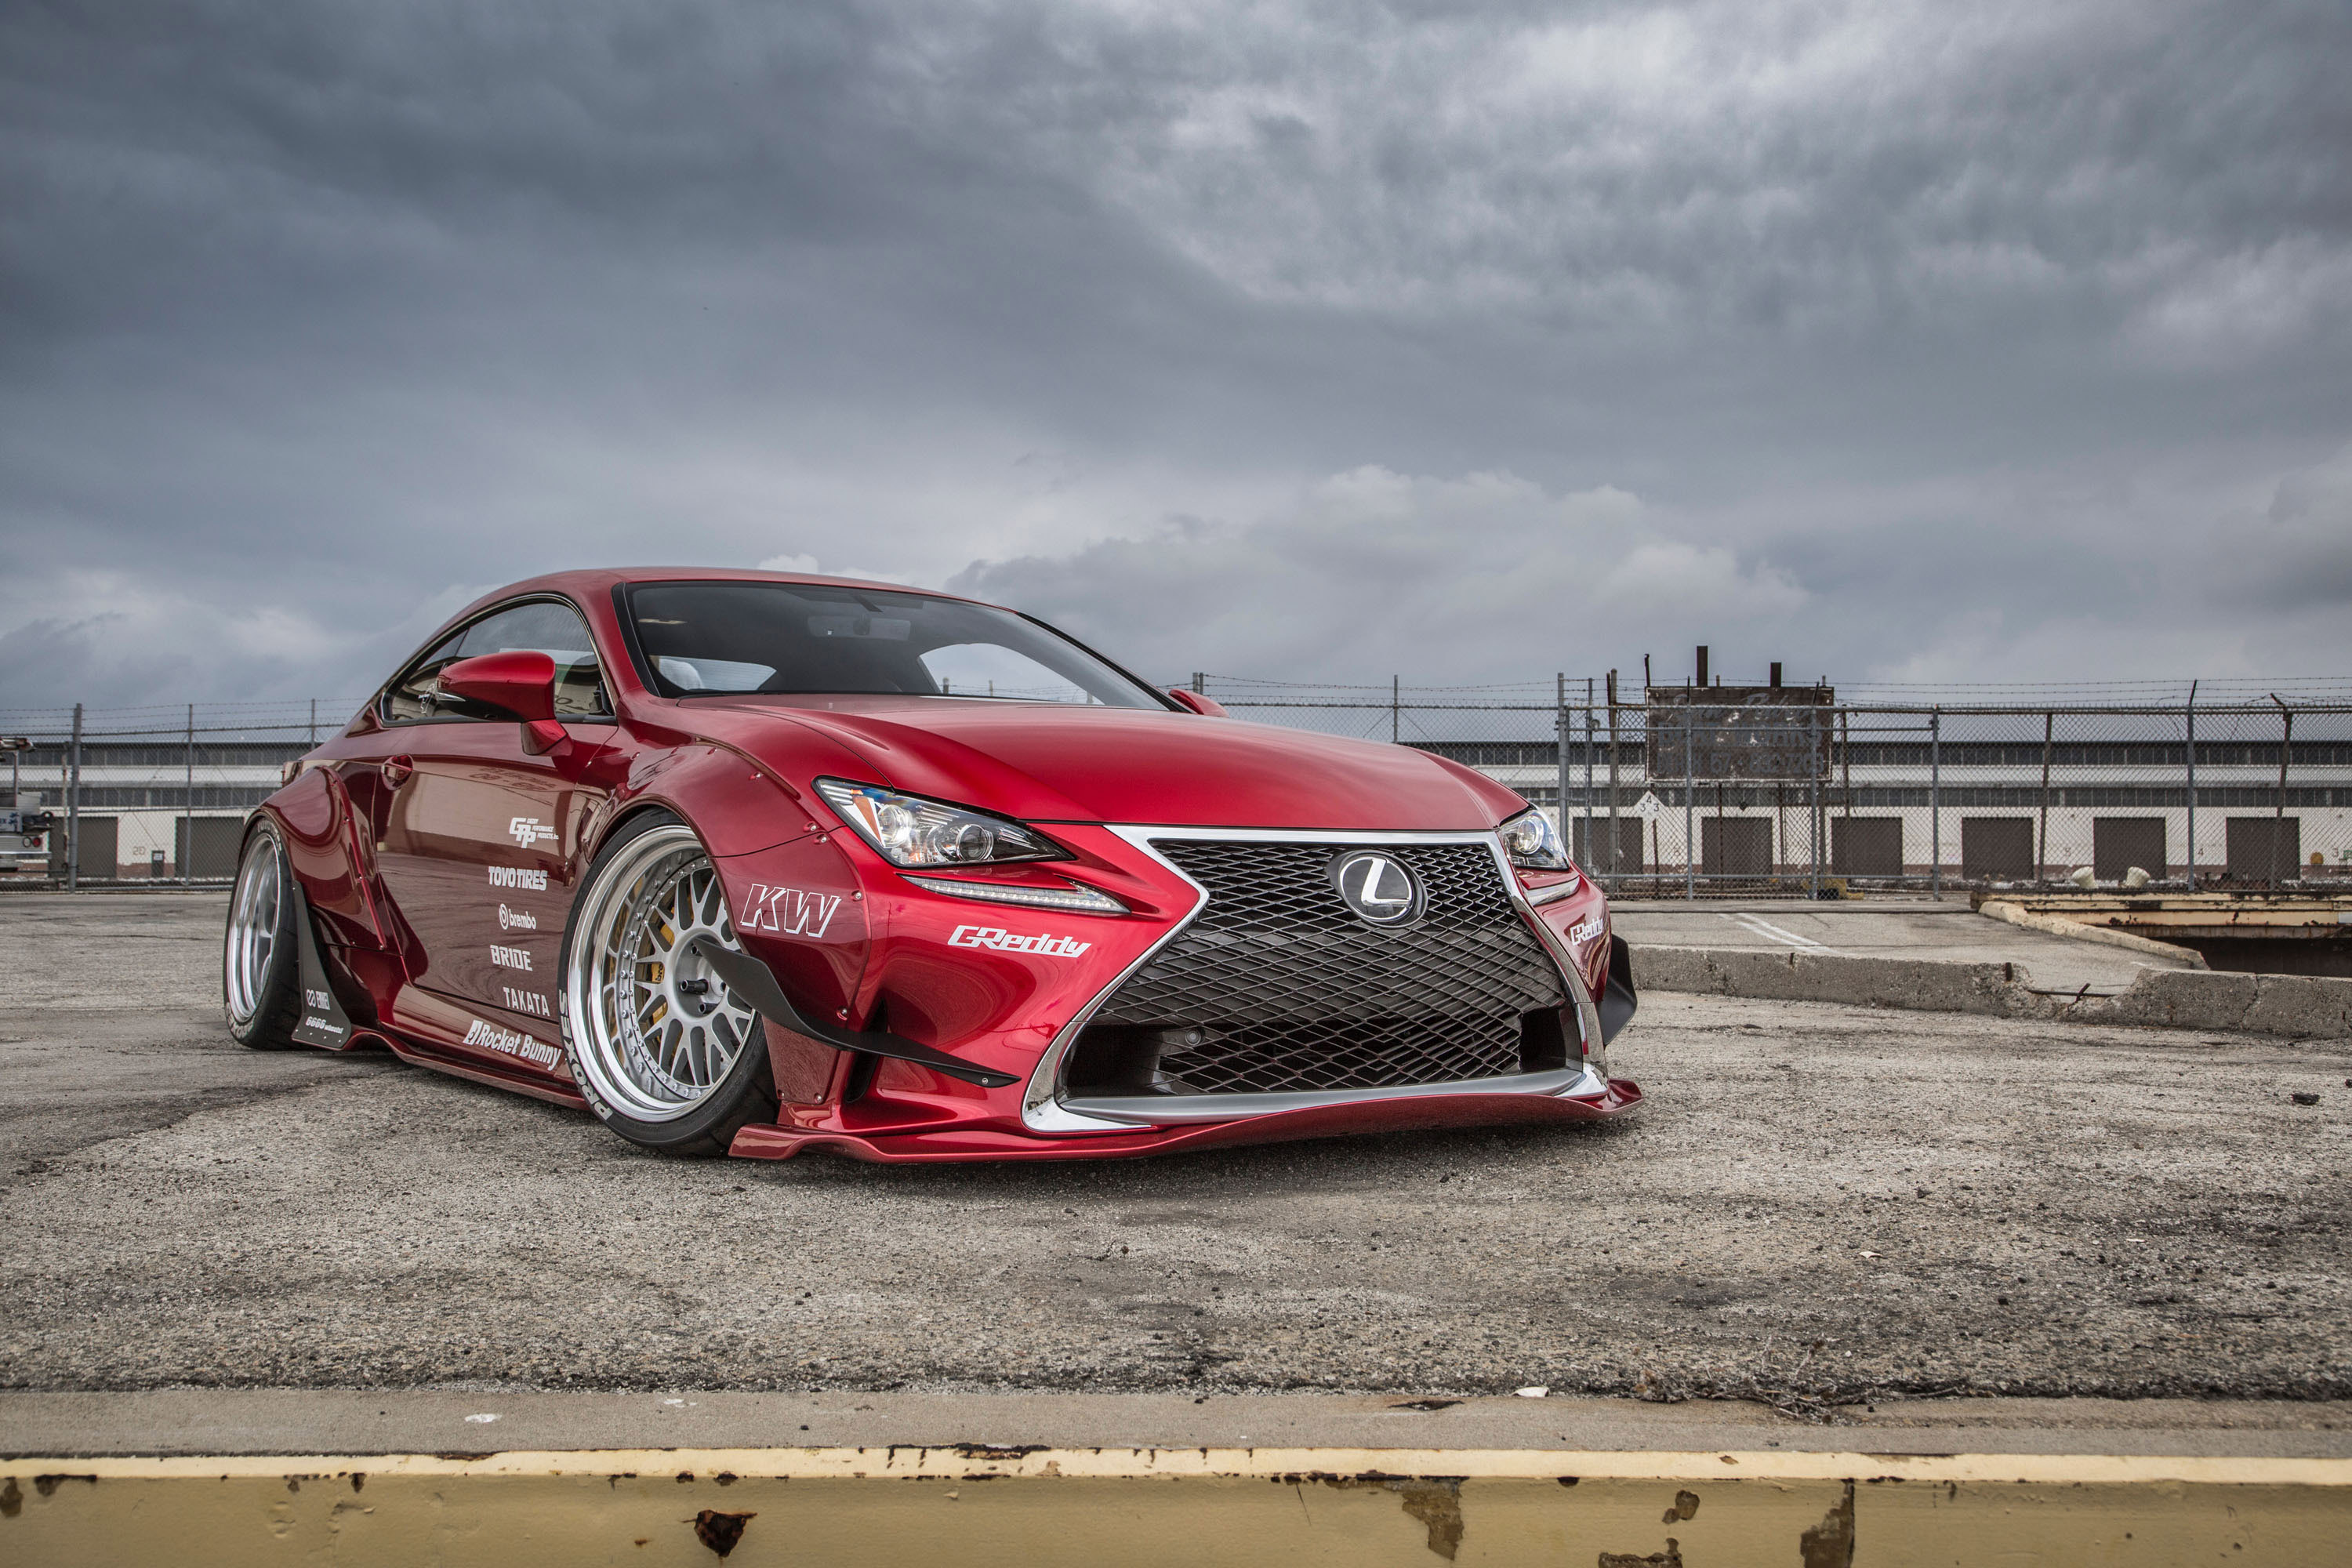 Gordon Ting Lexus RC 350 F SPORT photo #1